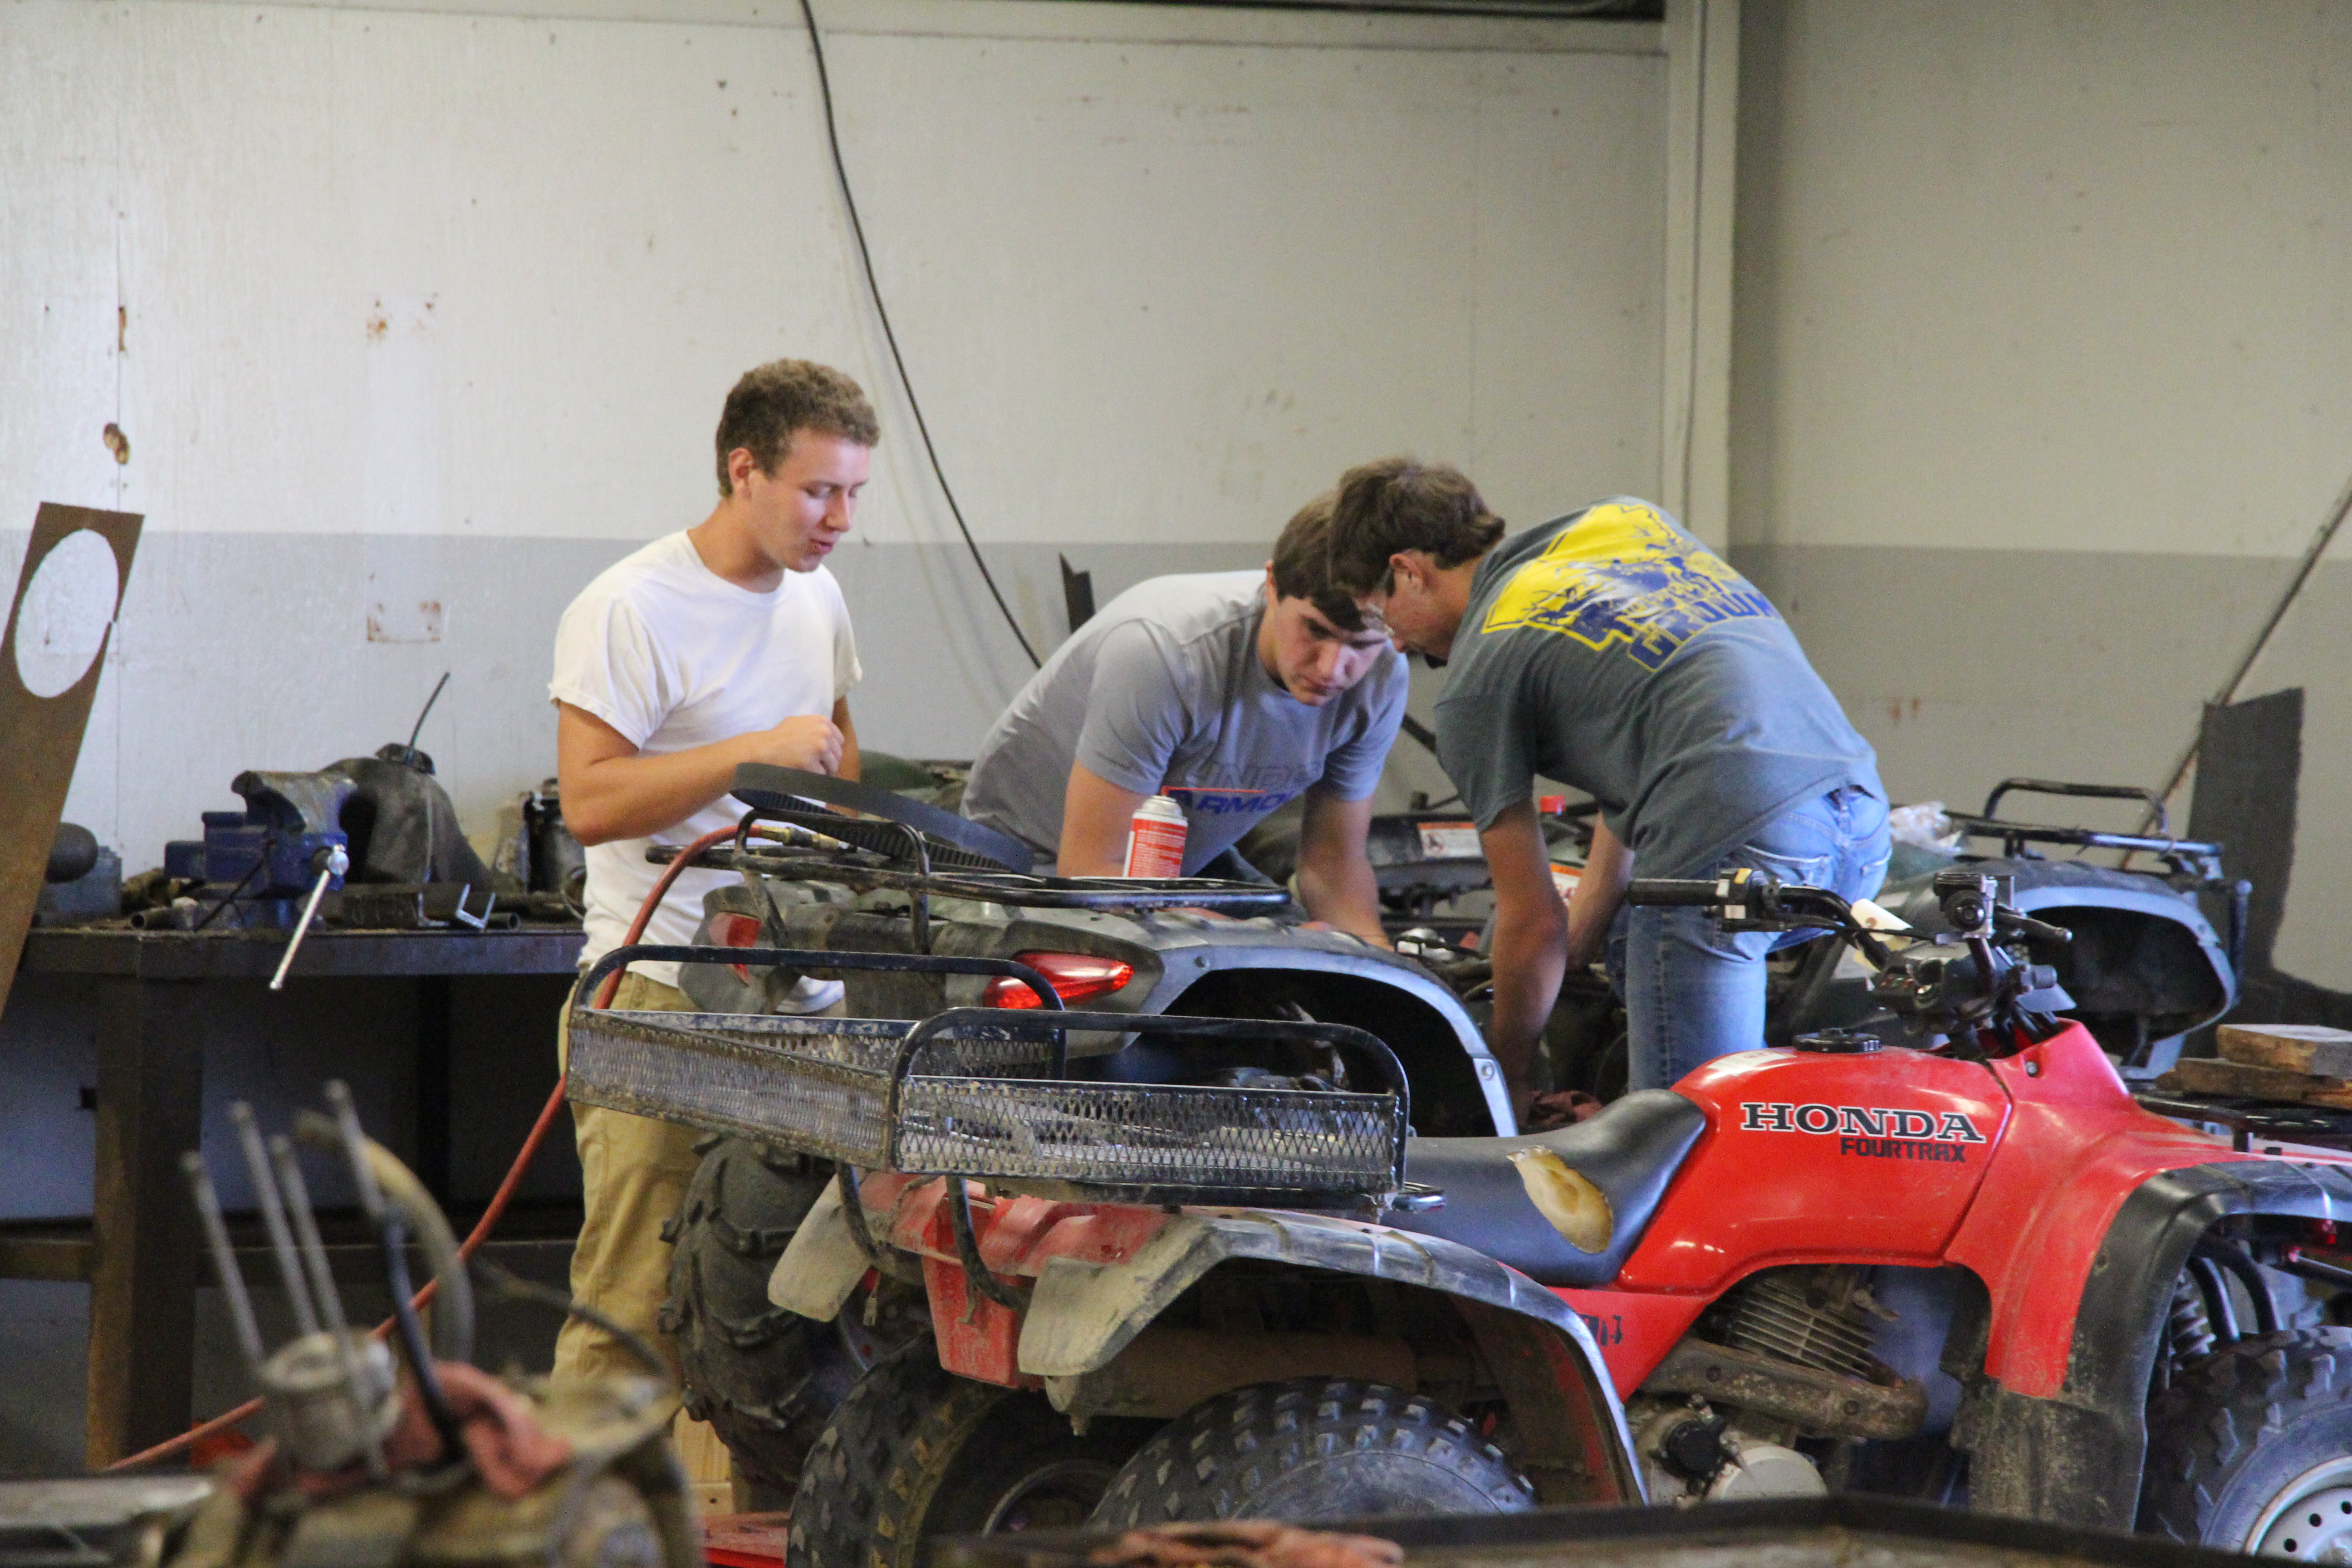 Outdoor Power Students work on 4-wheelers in the shop